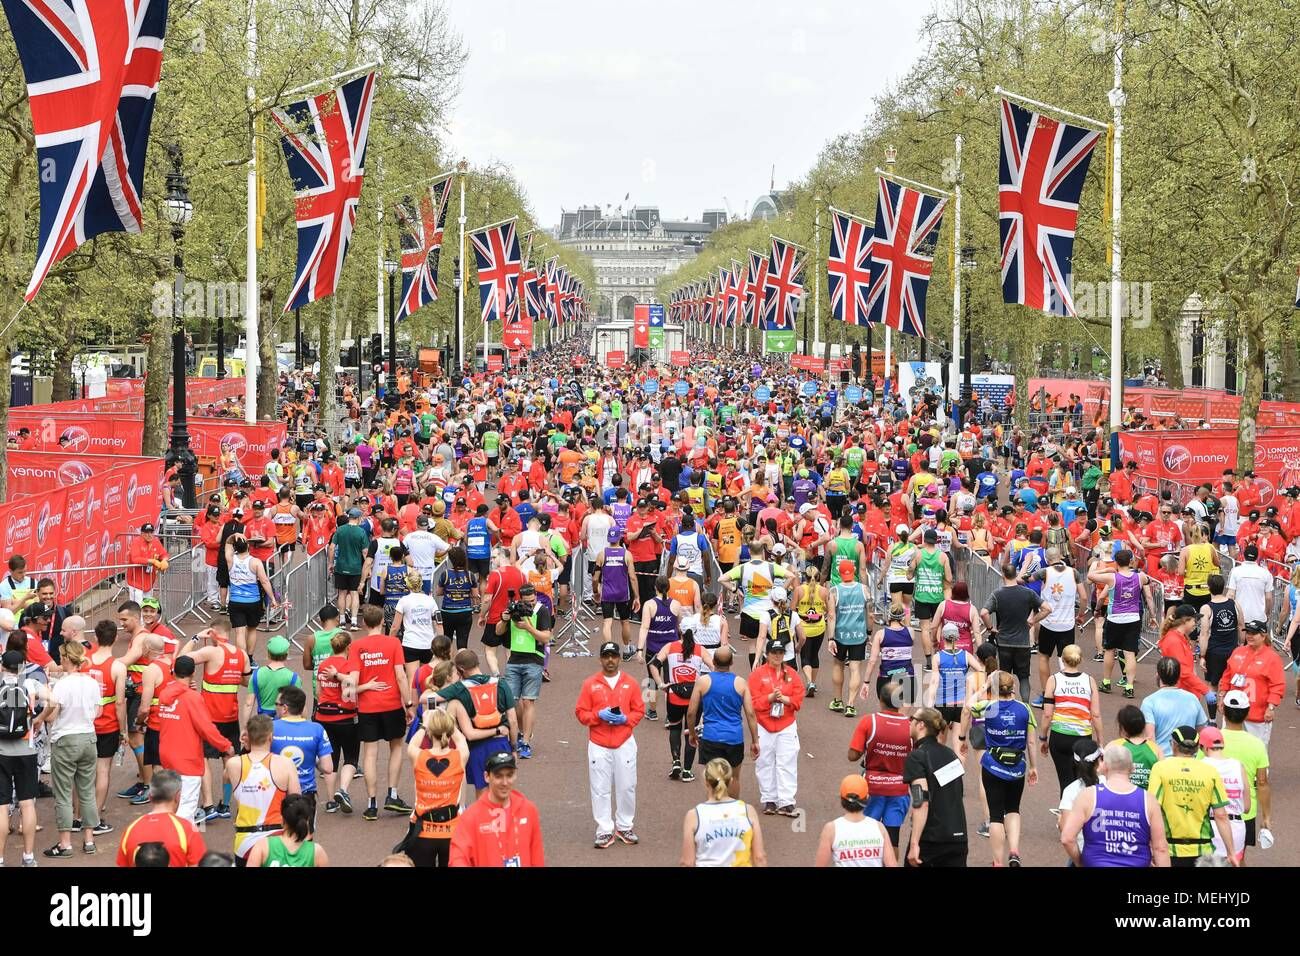 London, UK, 22 April 2018: Mass Race runners approach the finish at The Mall during the 2018 Virgin Money London Marathon on Sunday, 22 April 2018. London, England. Credit: Taka G Wu Stock Photo